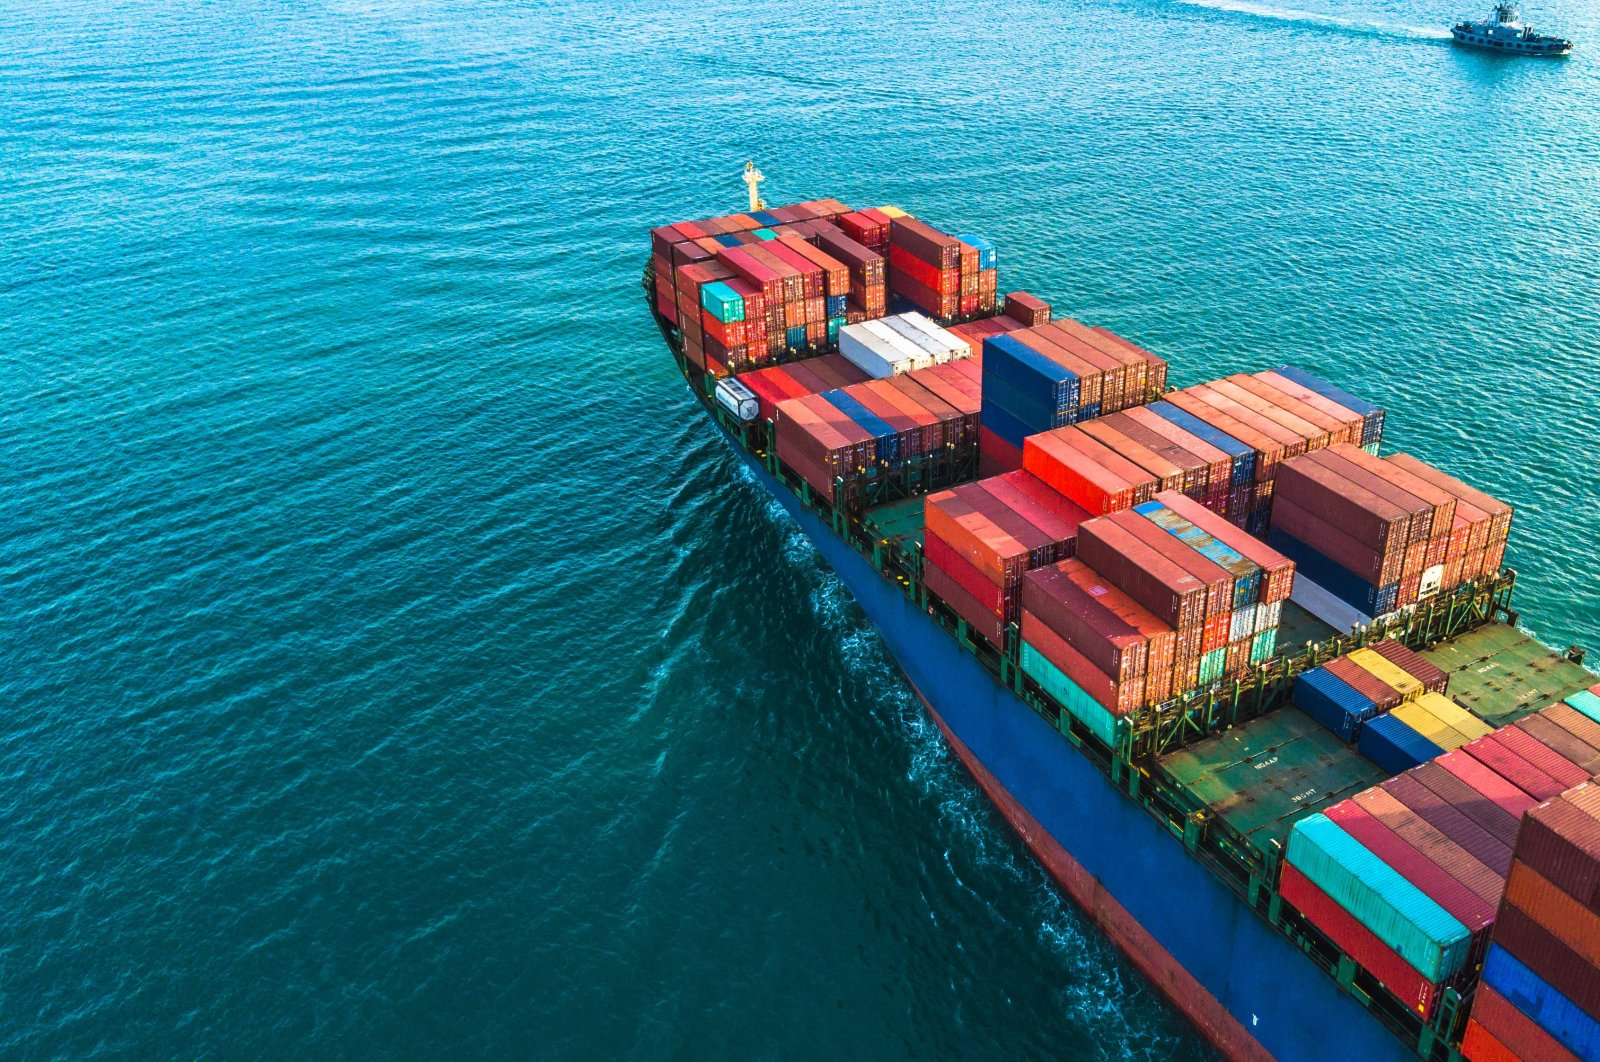 Turkey's exports rose by 15.7% year-on-year in June. (IHA Photo)